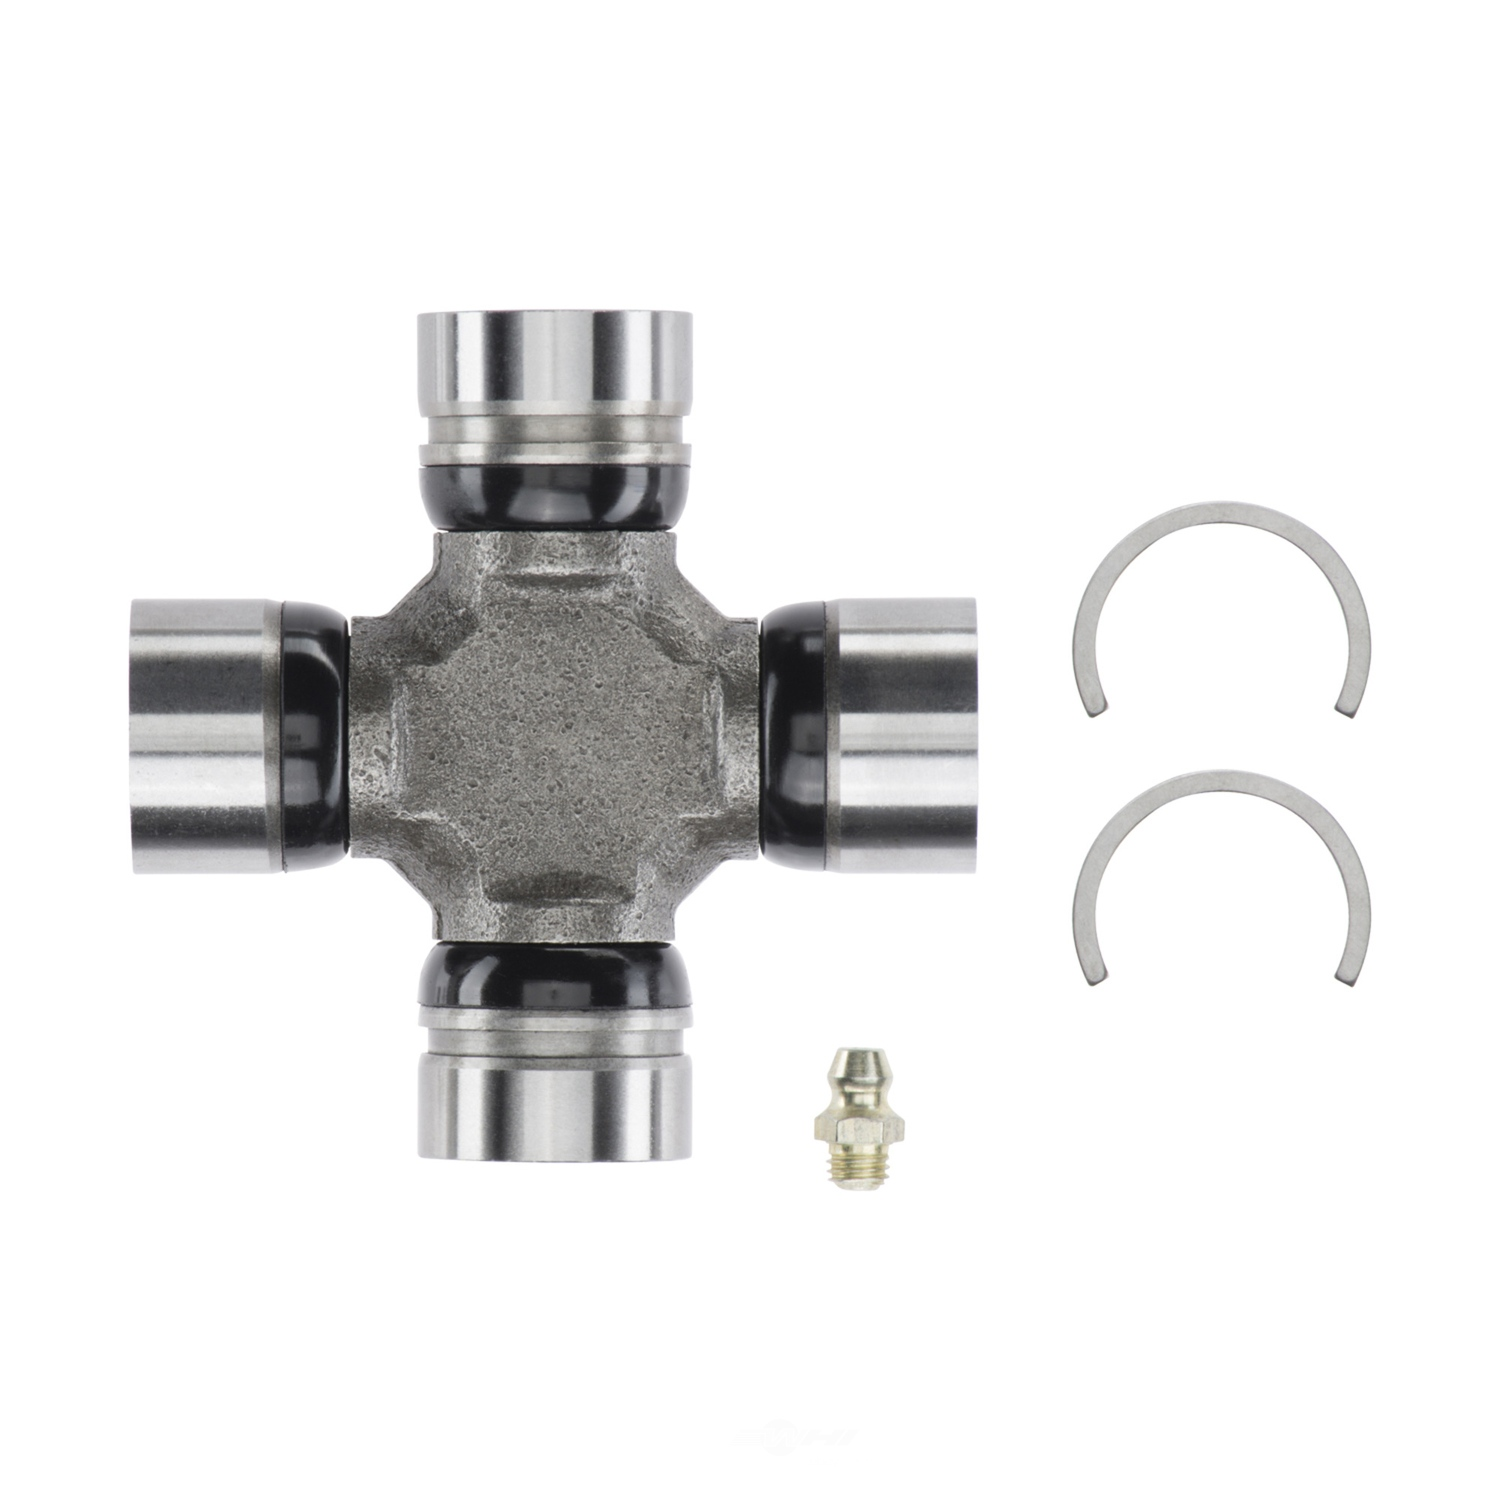 MOOG DRIVELINE PRODUCTS - Universal Joint - MDP 445